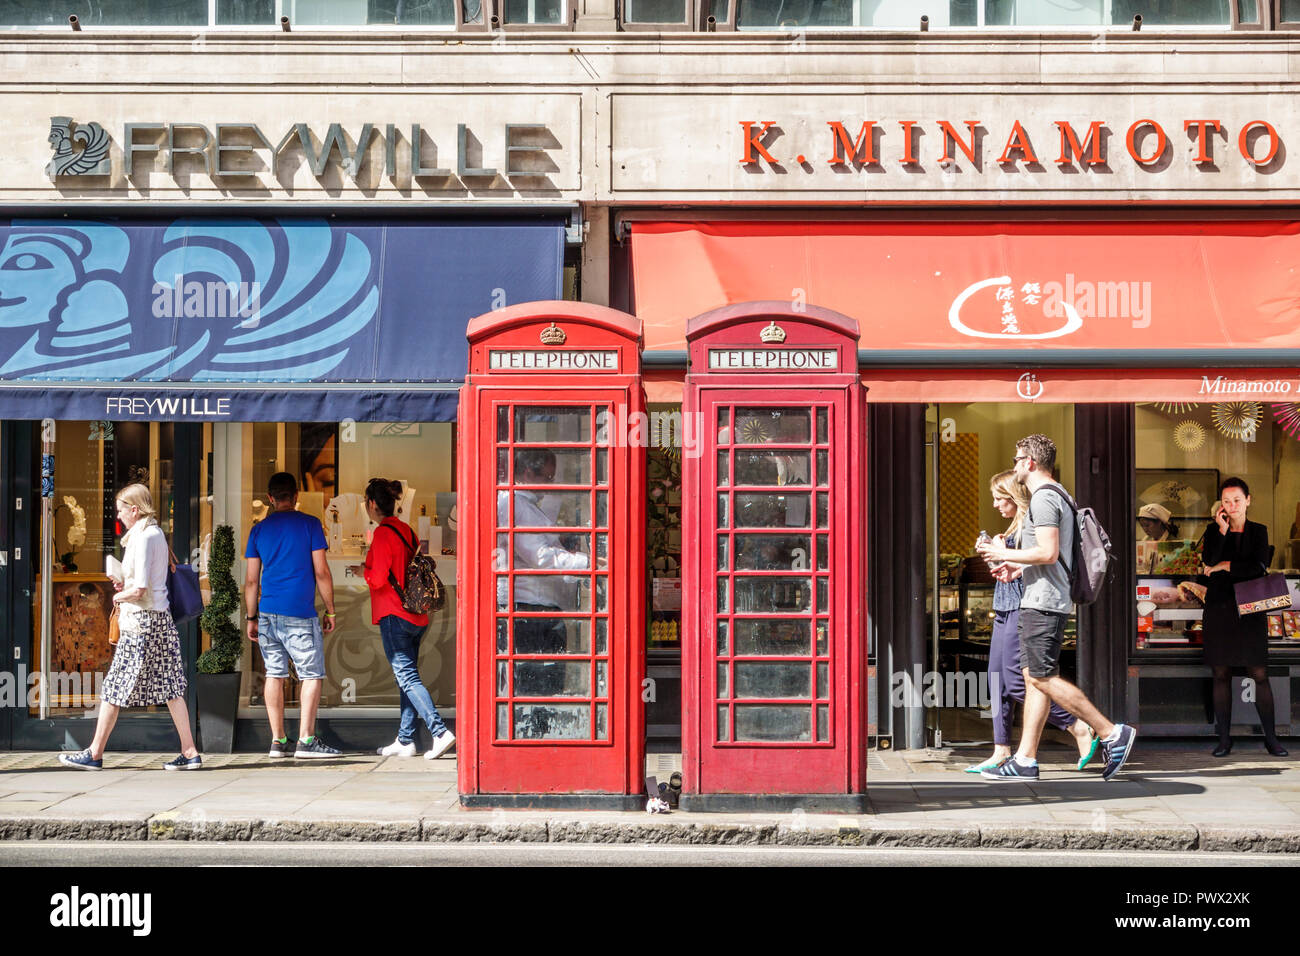 London England United Kingdom Great Britain West End St James's shopping district storefronts red telephone box public phone booth kiosk Giles Gilbert - Stock Image